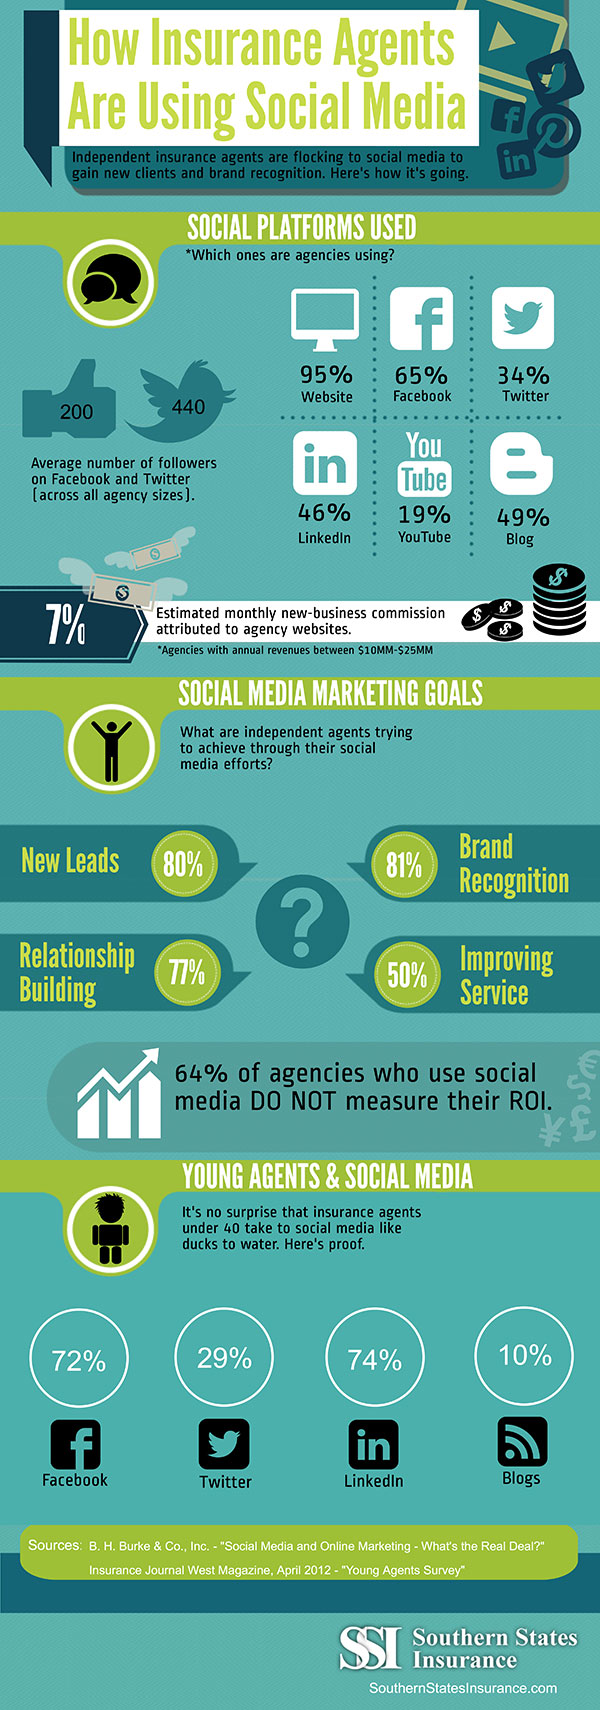 how-insurance-agents-are-using-social-media-infographic